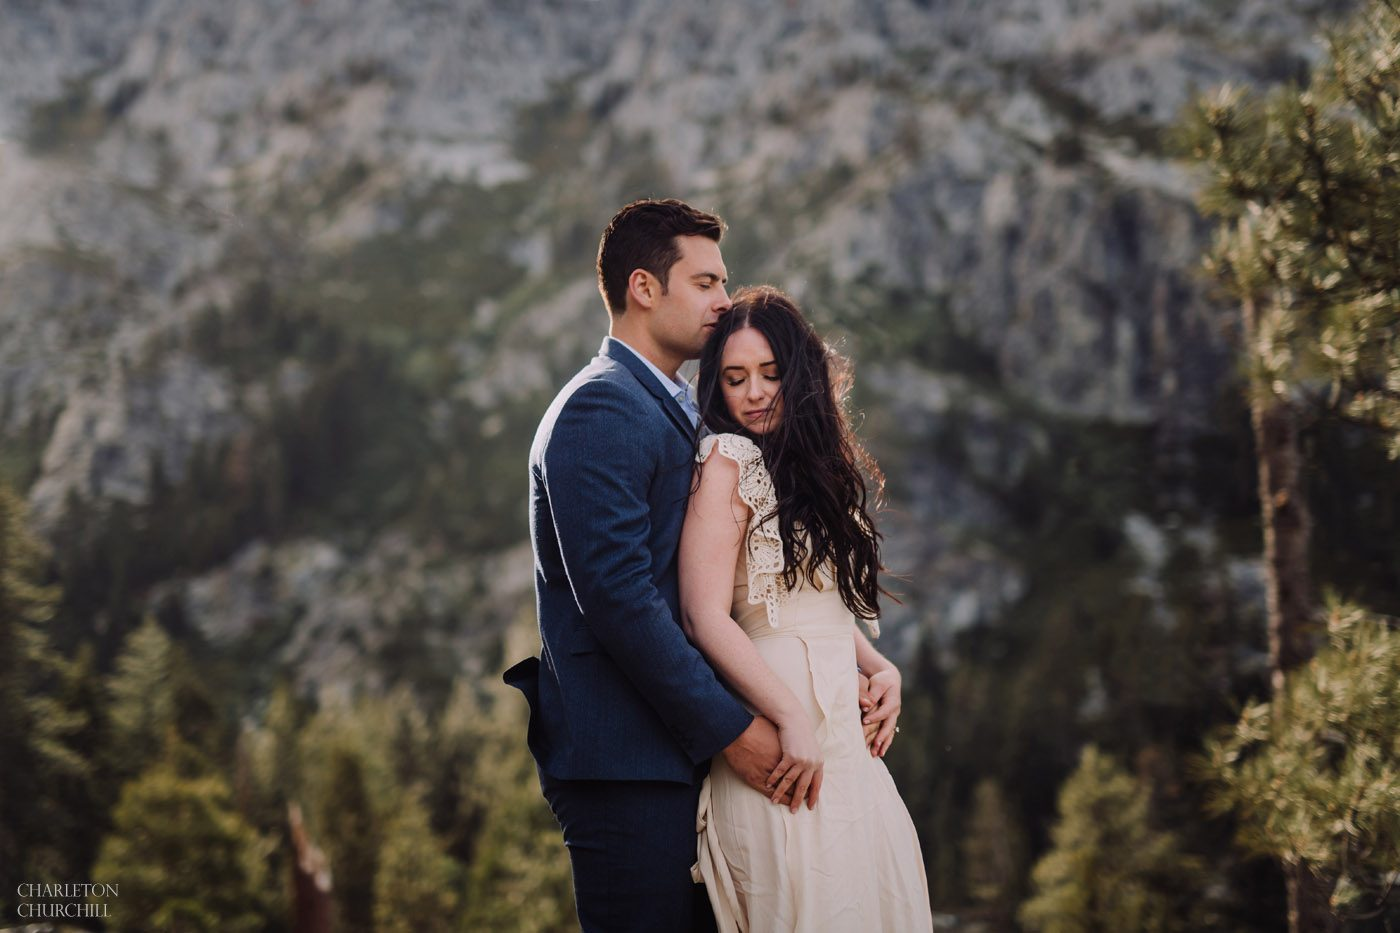 windy engagement session photos around lake tahoe with creme colored dress and blue suit